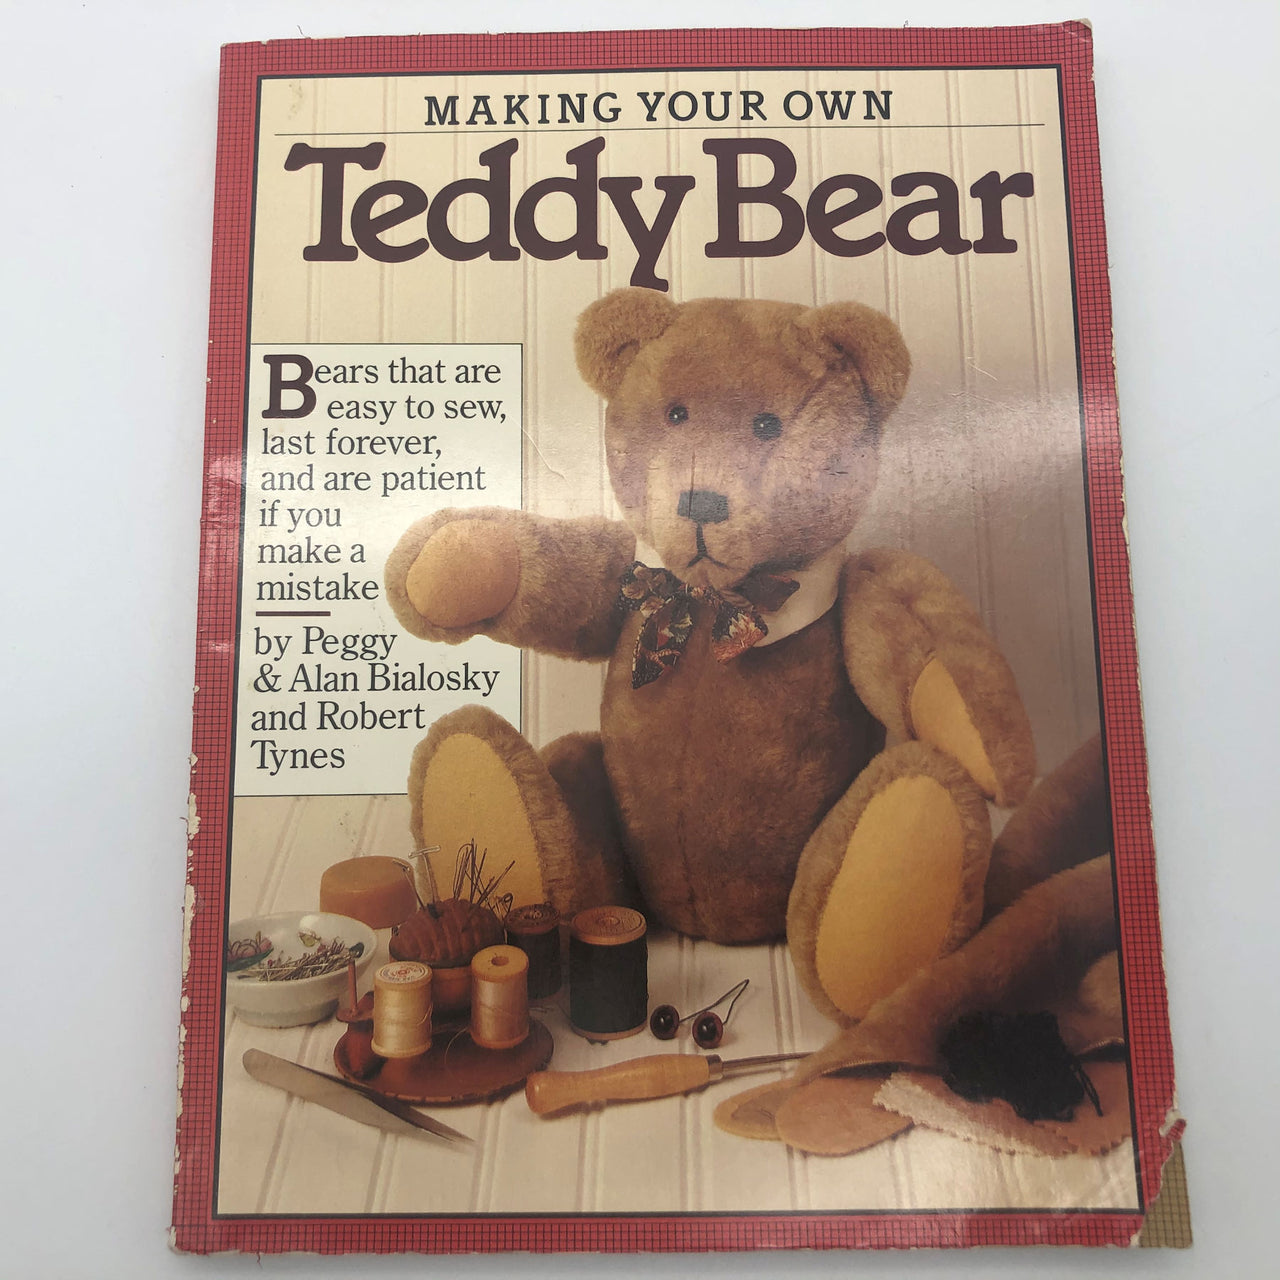 Making Your Own Teddy Bear Peggy Alan Bialosky Robert Tynes